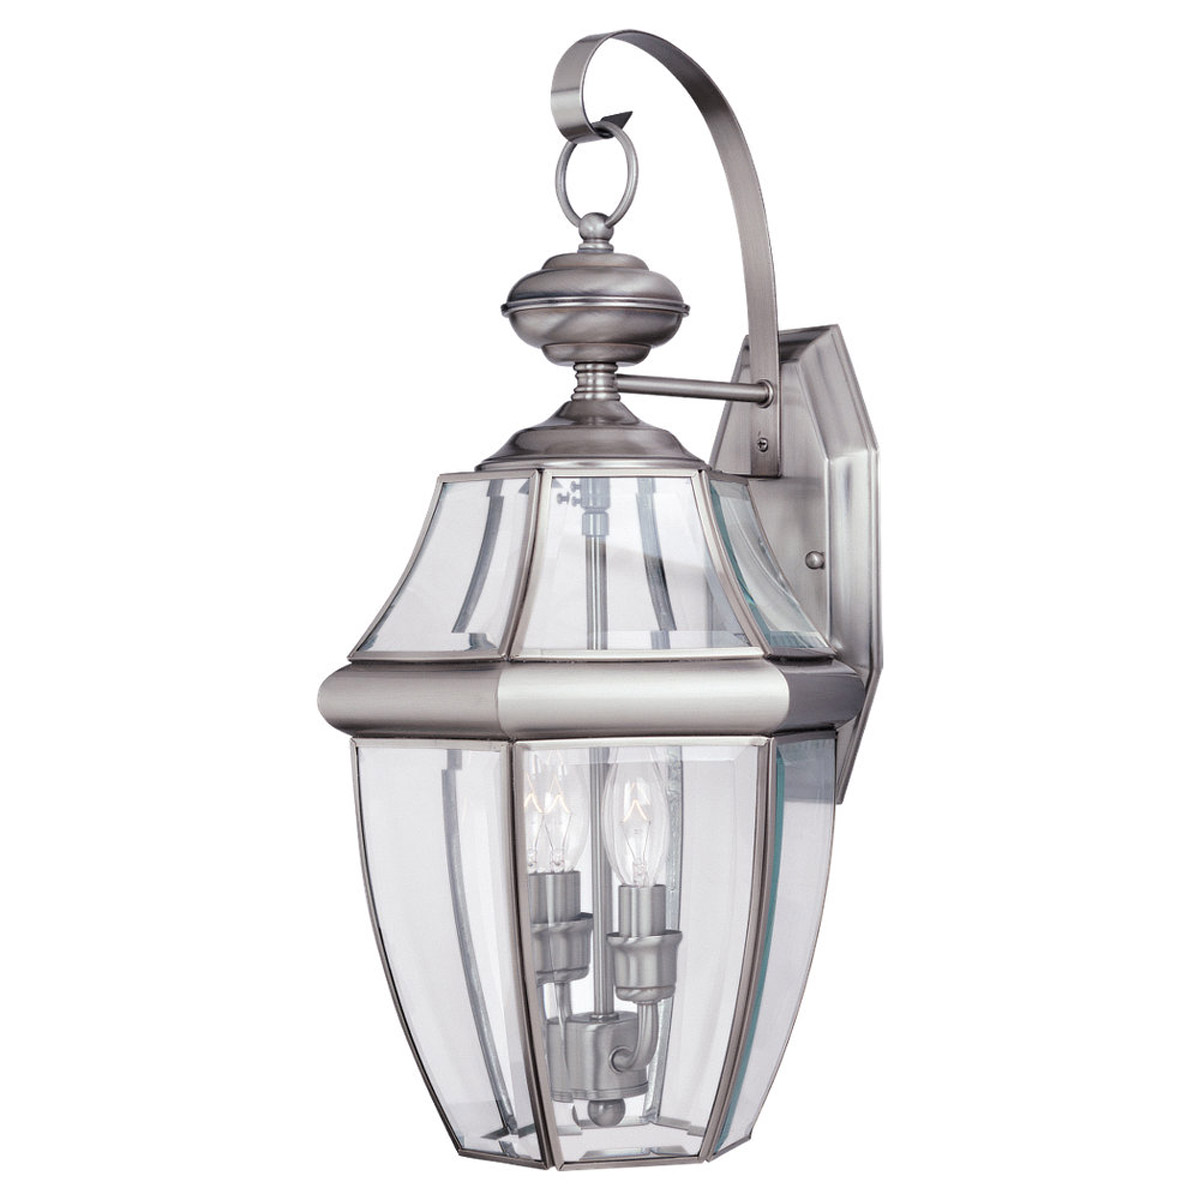 Sea gull 8039 965 lancaster 2 light 21 inch antique brushed nickel sea gull 8039 965 lancaster 2 light 21 inch antique brushed nickel outdoor wall lantern workwithnaturefo